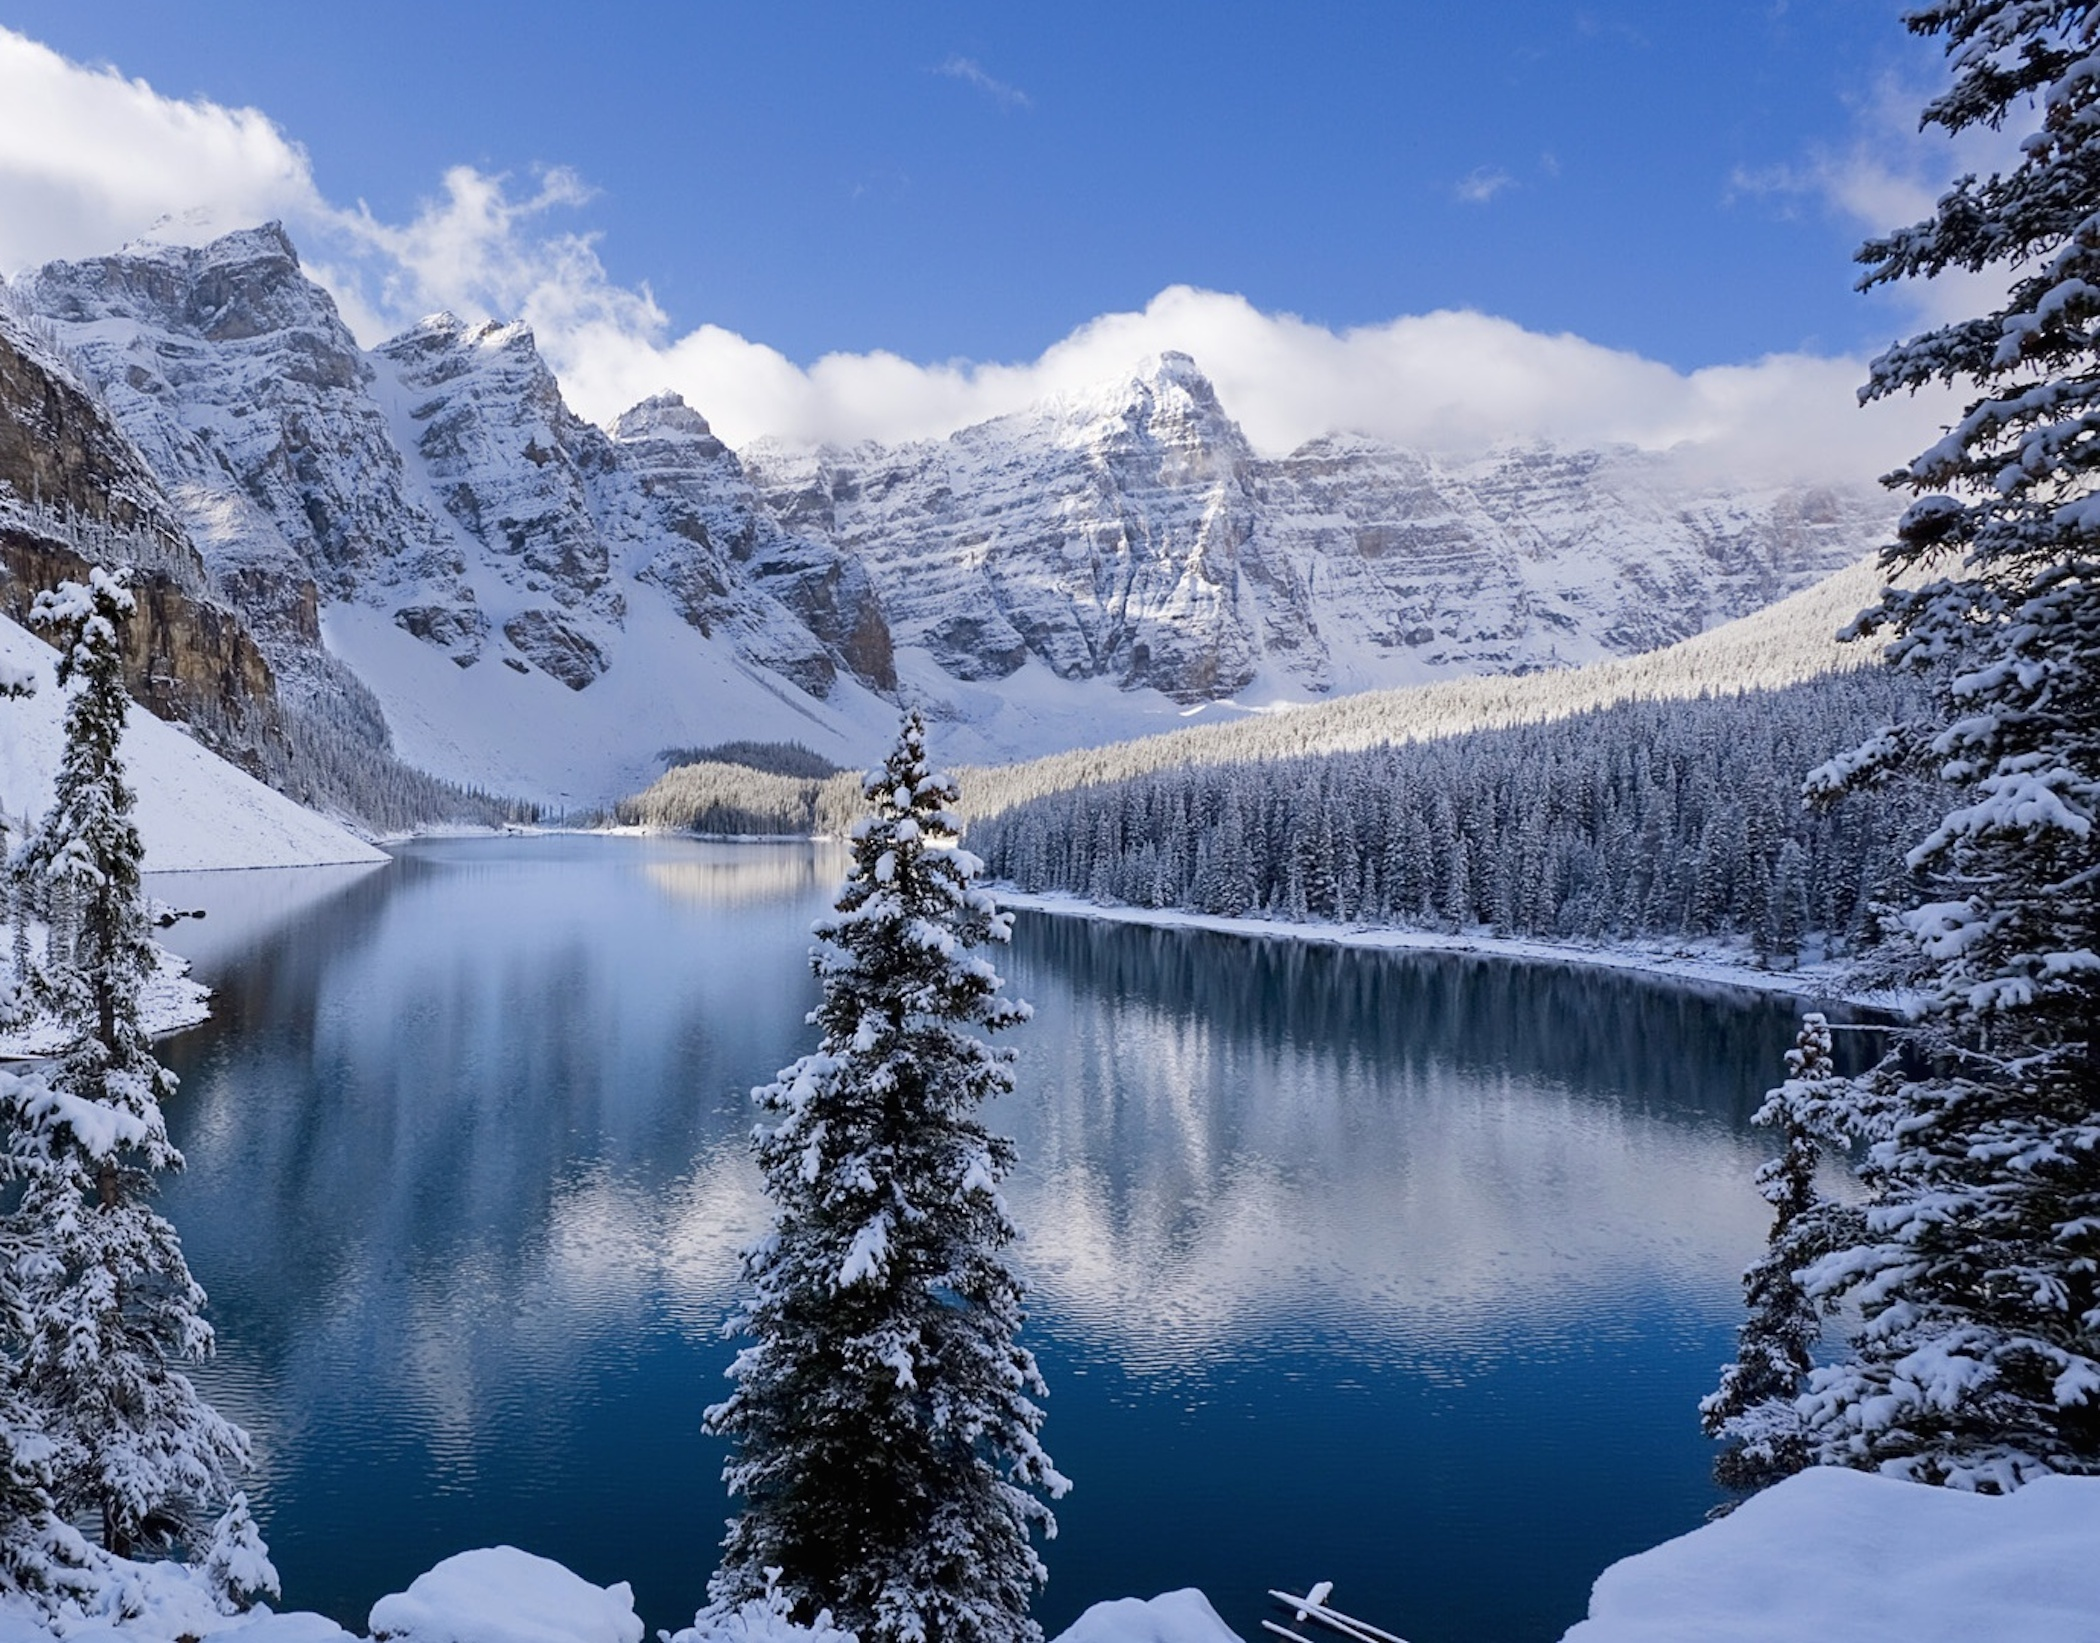 Snow Covered Mountains Wallpaper Free Downloads